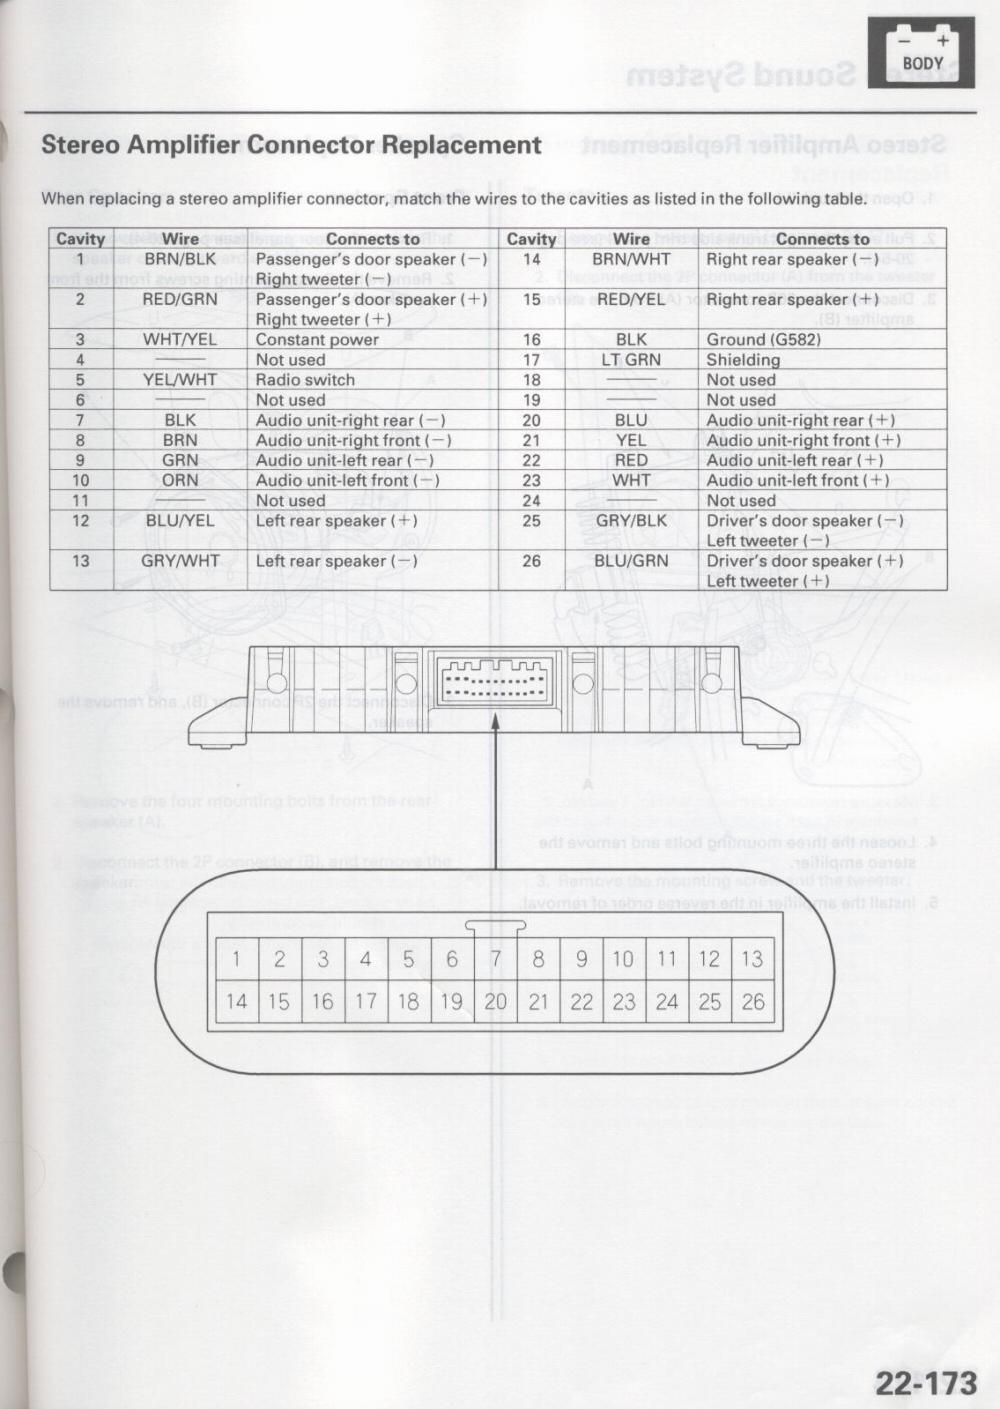 Acura 2002 TL car stereo amplifier wiring diagram harness car radio stereo audio wiring diagram autoradio connector wire 2012 chrysler 200 speaker wiring diagram at sewacar.co